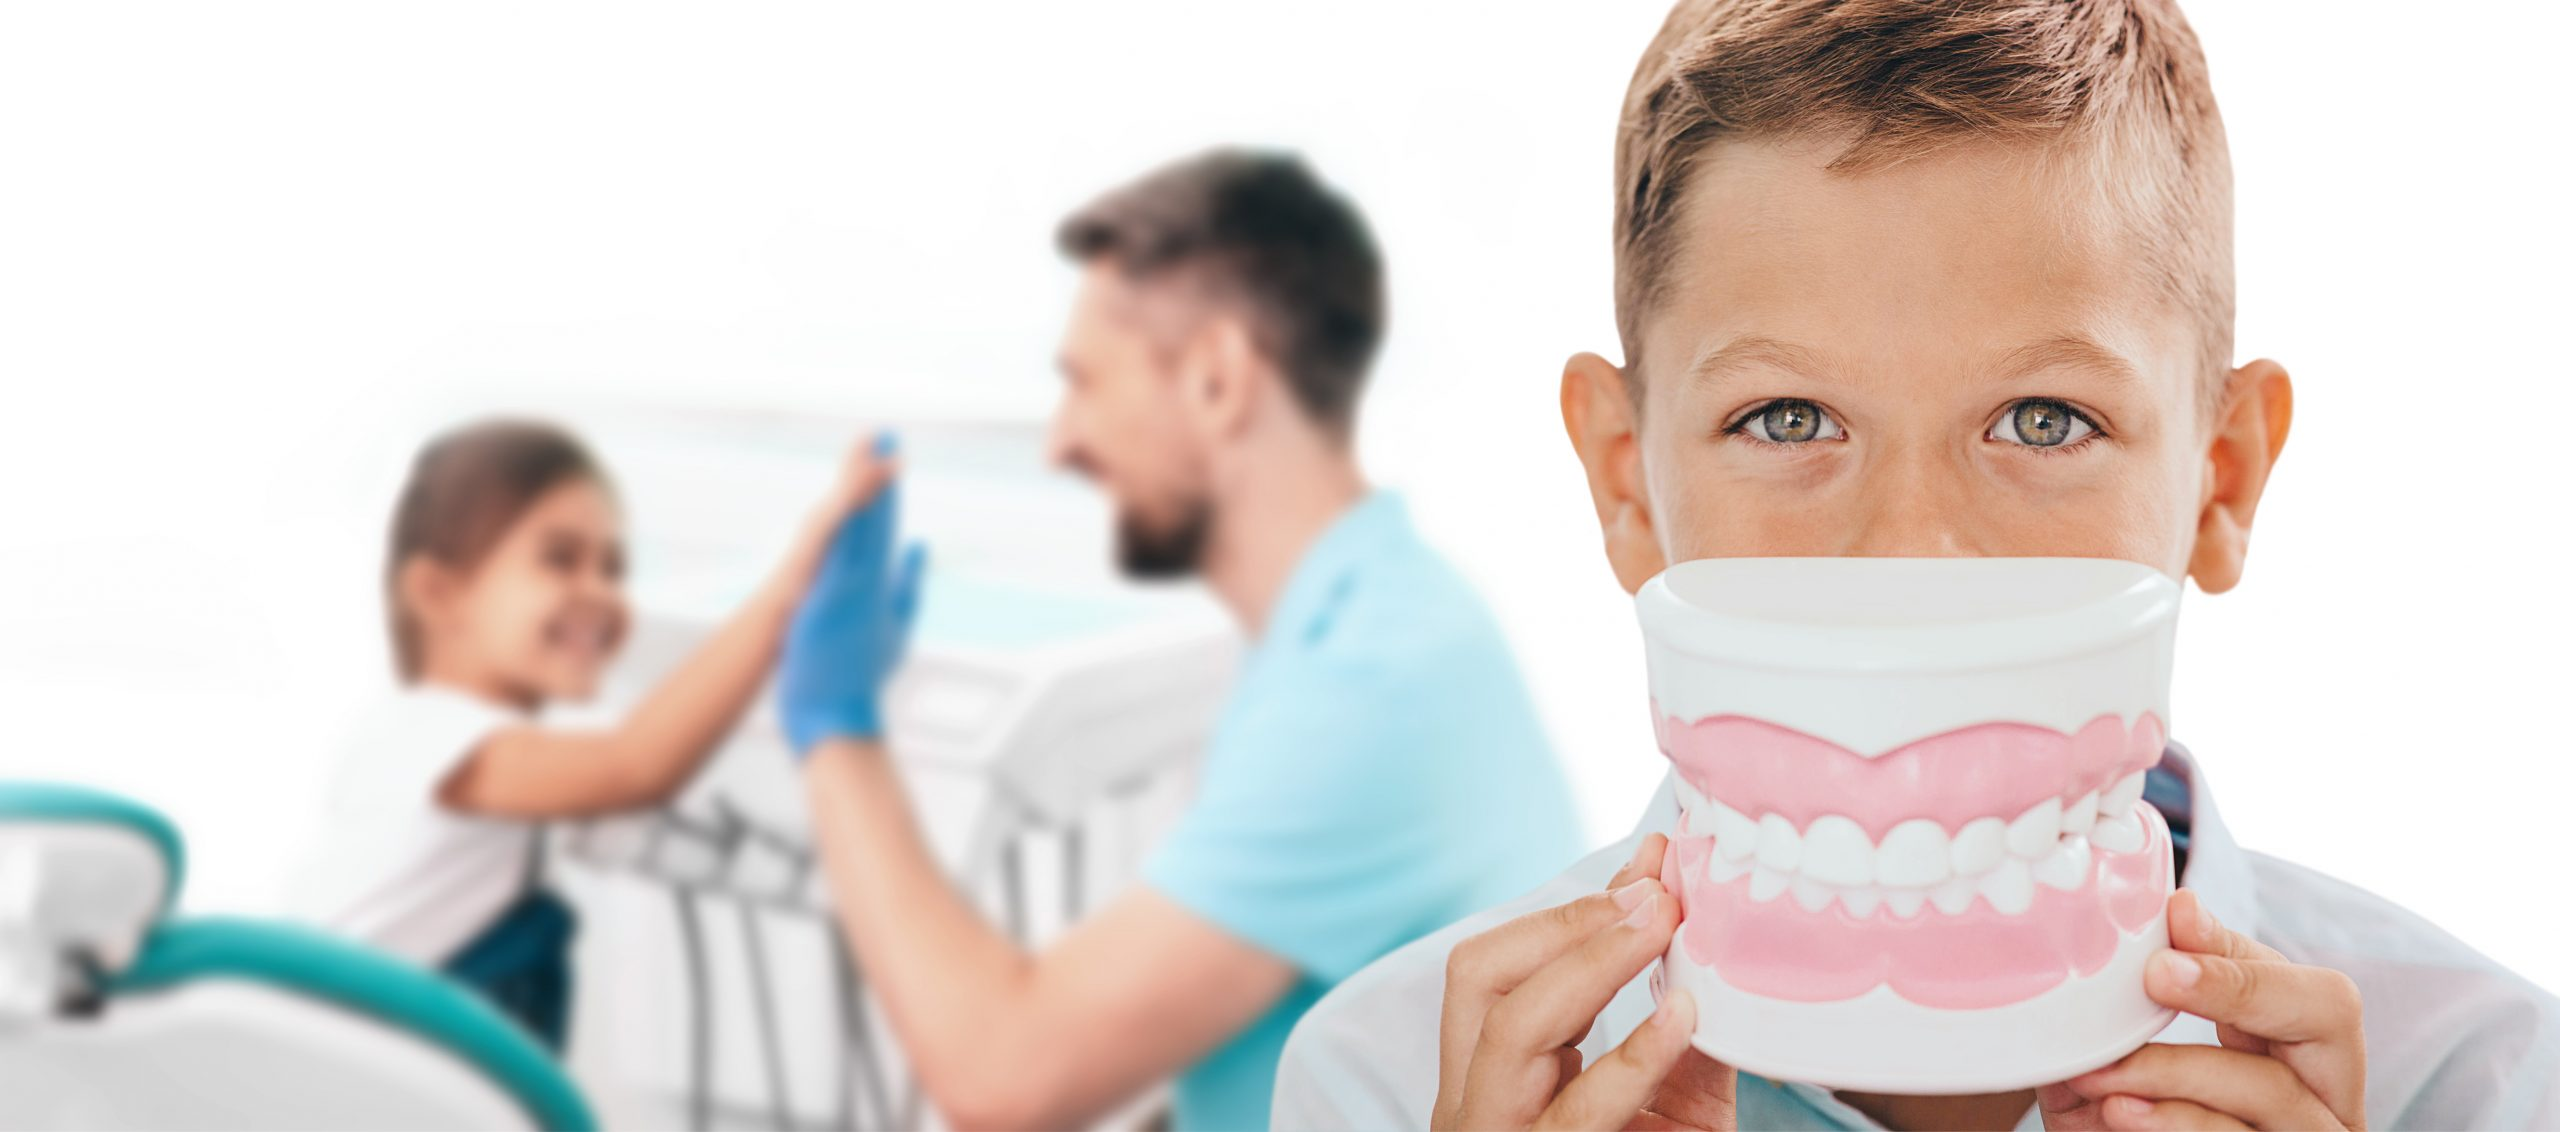 Pediatric dentistry, children teeth treatment. Boy with a large model of smile in front of the face, against the background of a dentist and a girl